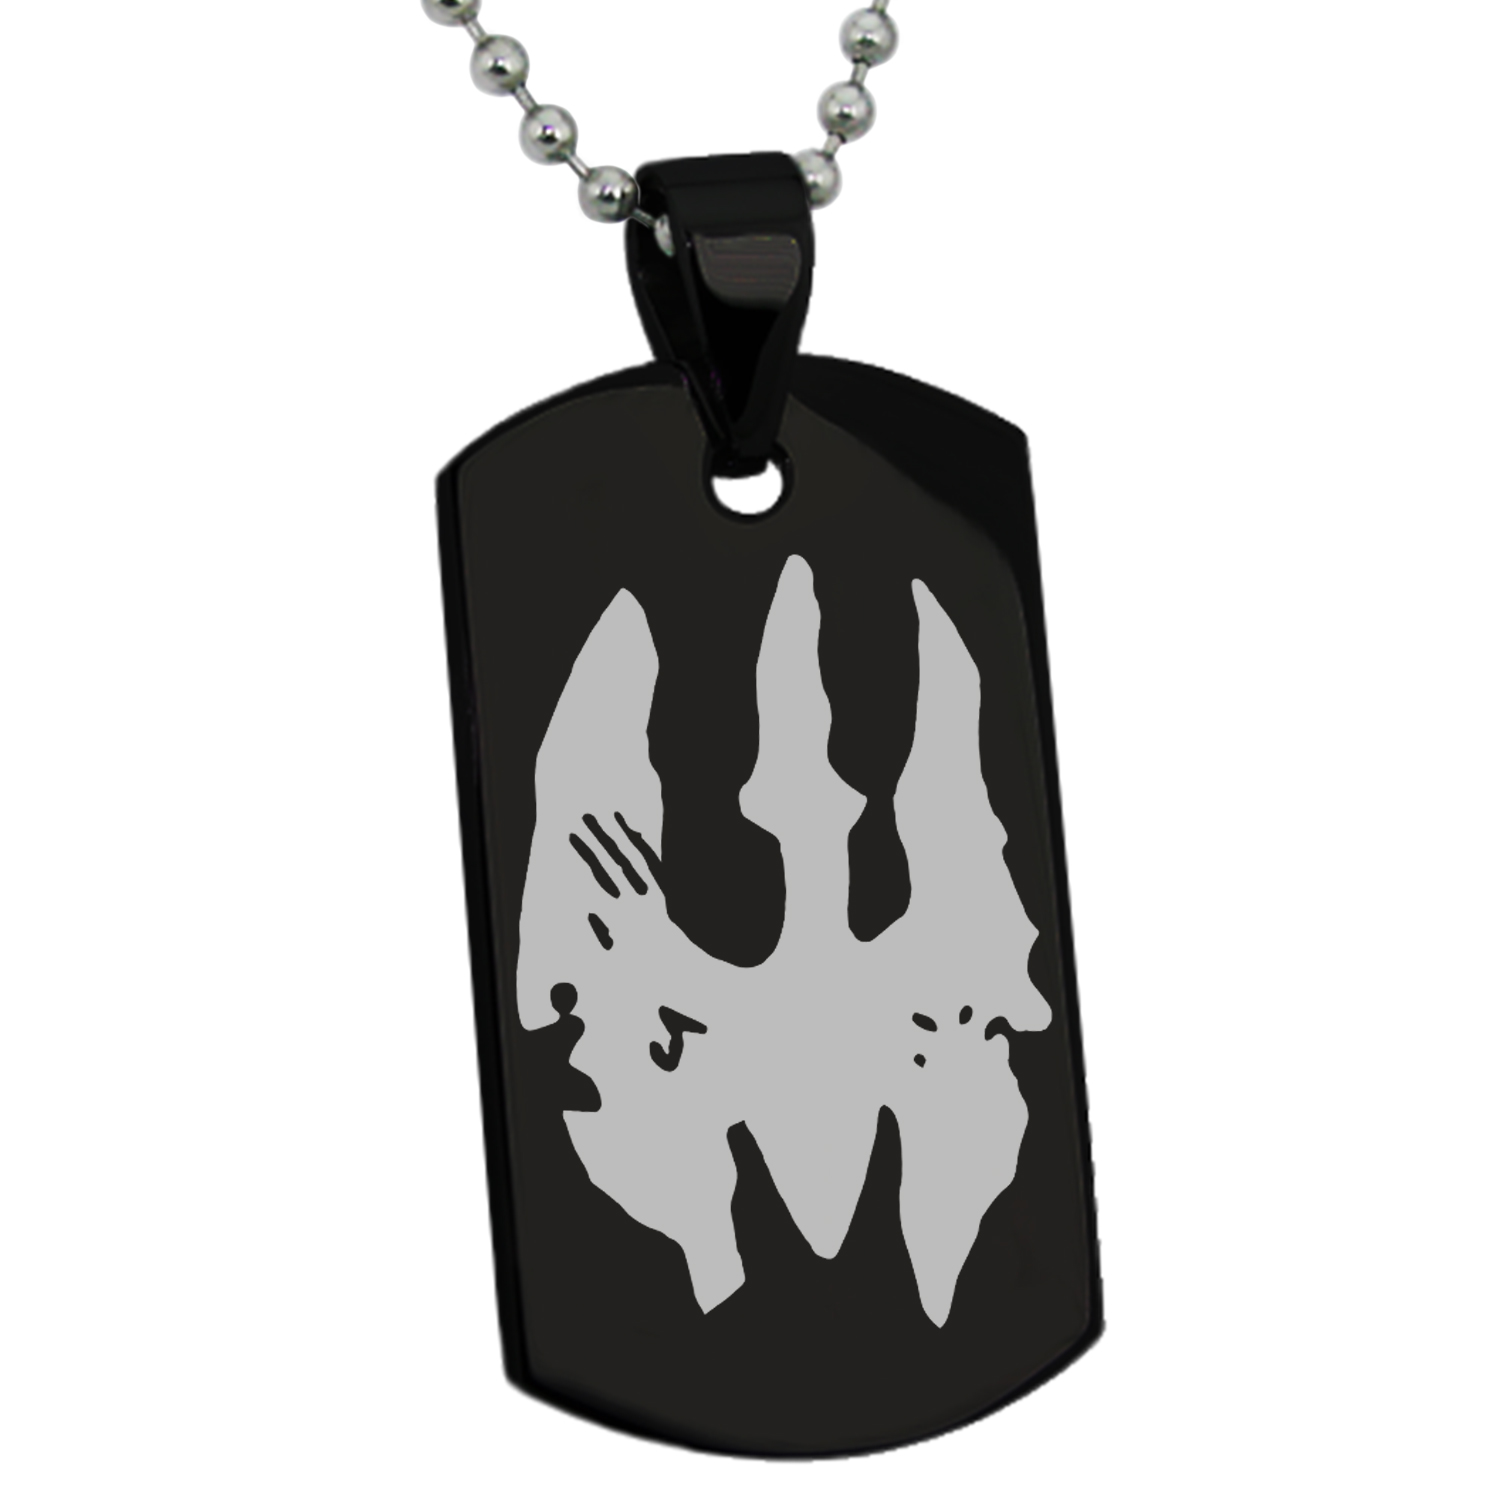 Stainless steel star wars mandalorian death watch symbol engraved stainless steel star wars mandalorian death watch symbol engraved dog tag pendant necklace walmart biocorpaavc Image collections